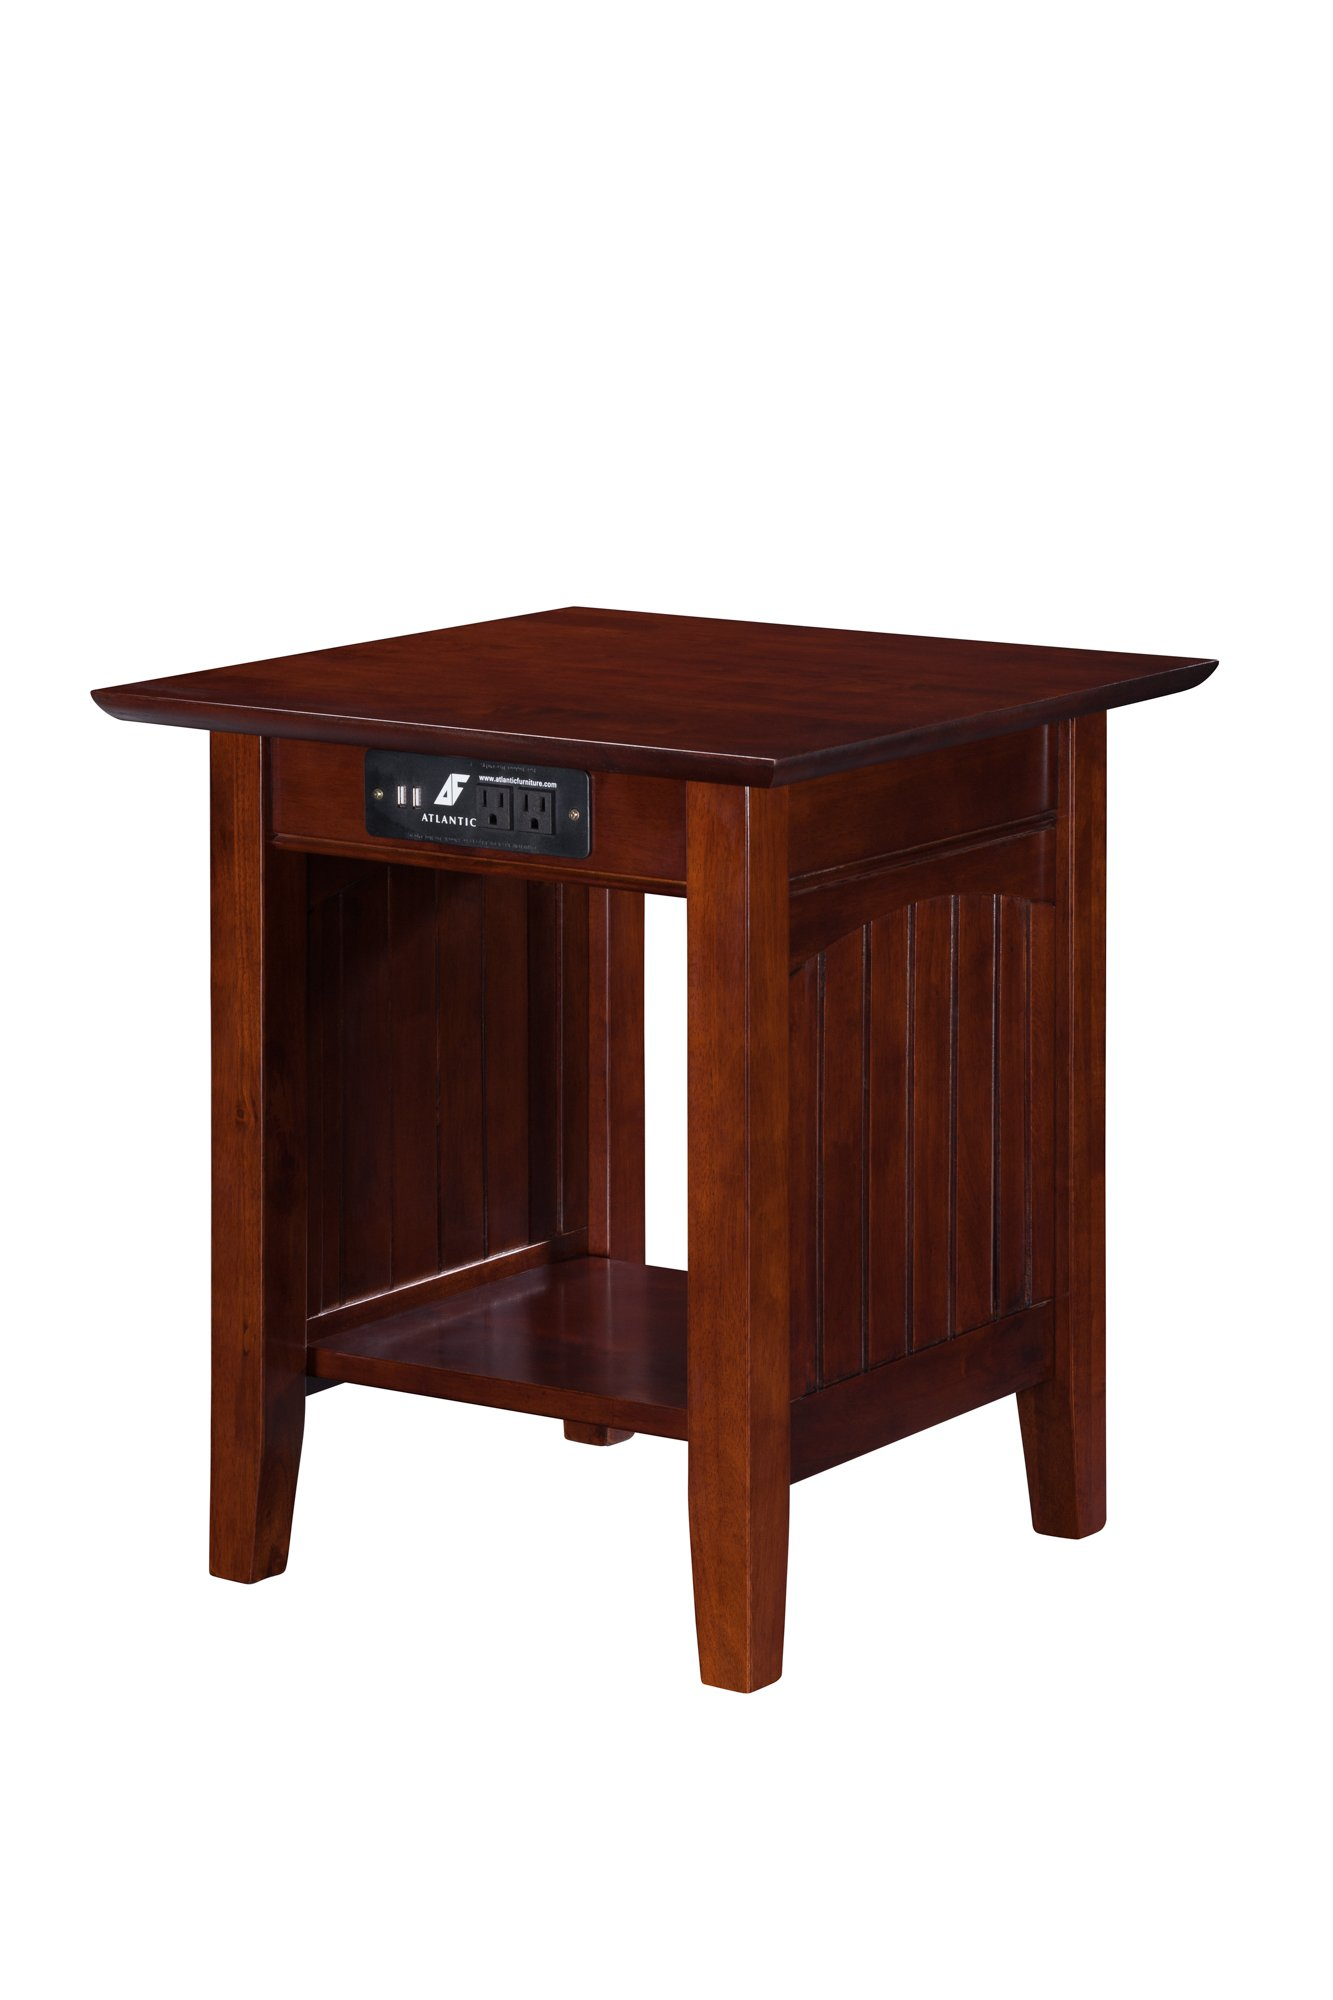 Nantucket End Table with USB Charger, Walnut